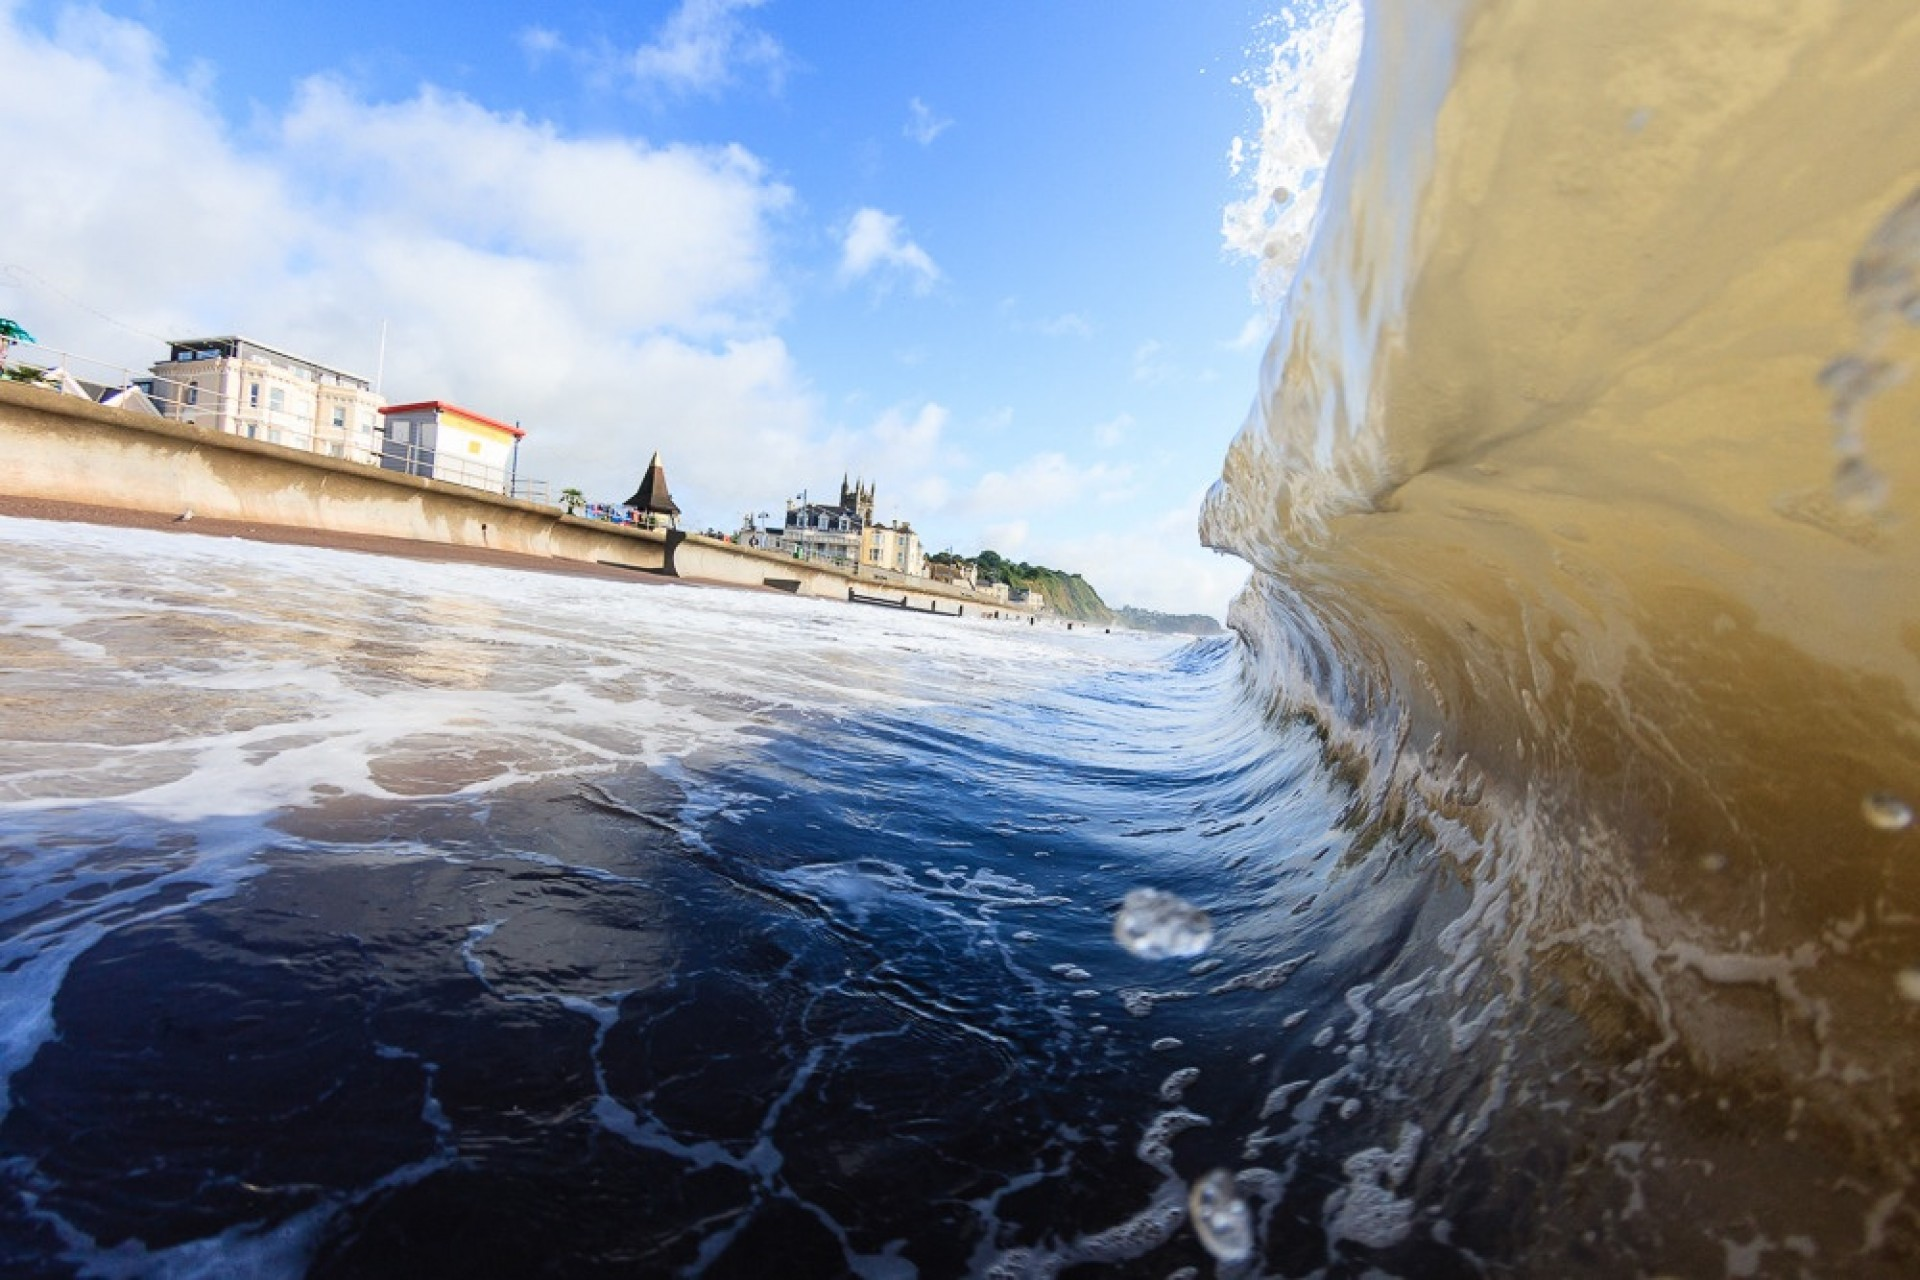 FluidVisions Photography's photo of Teignmouth